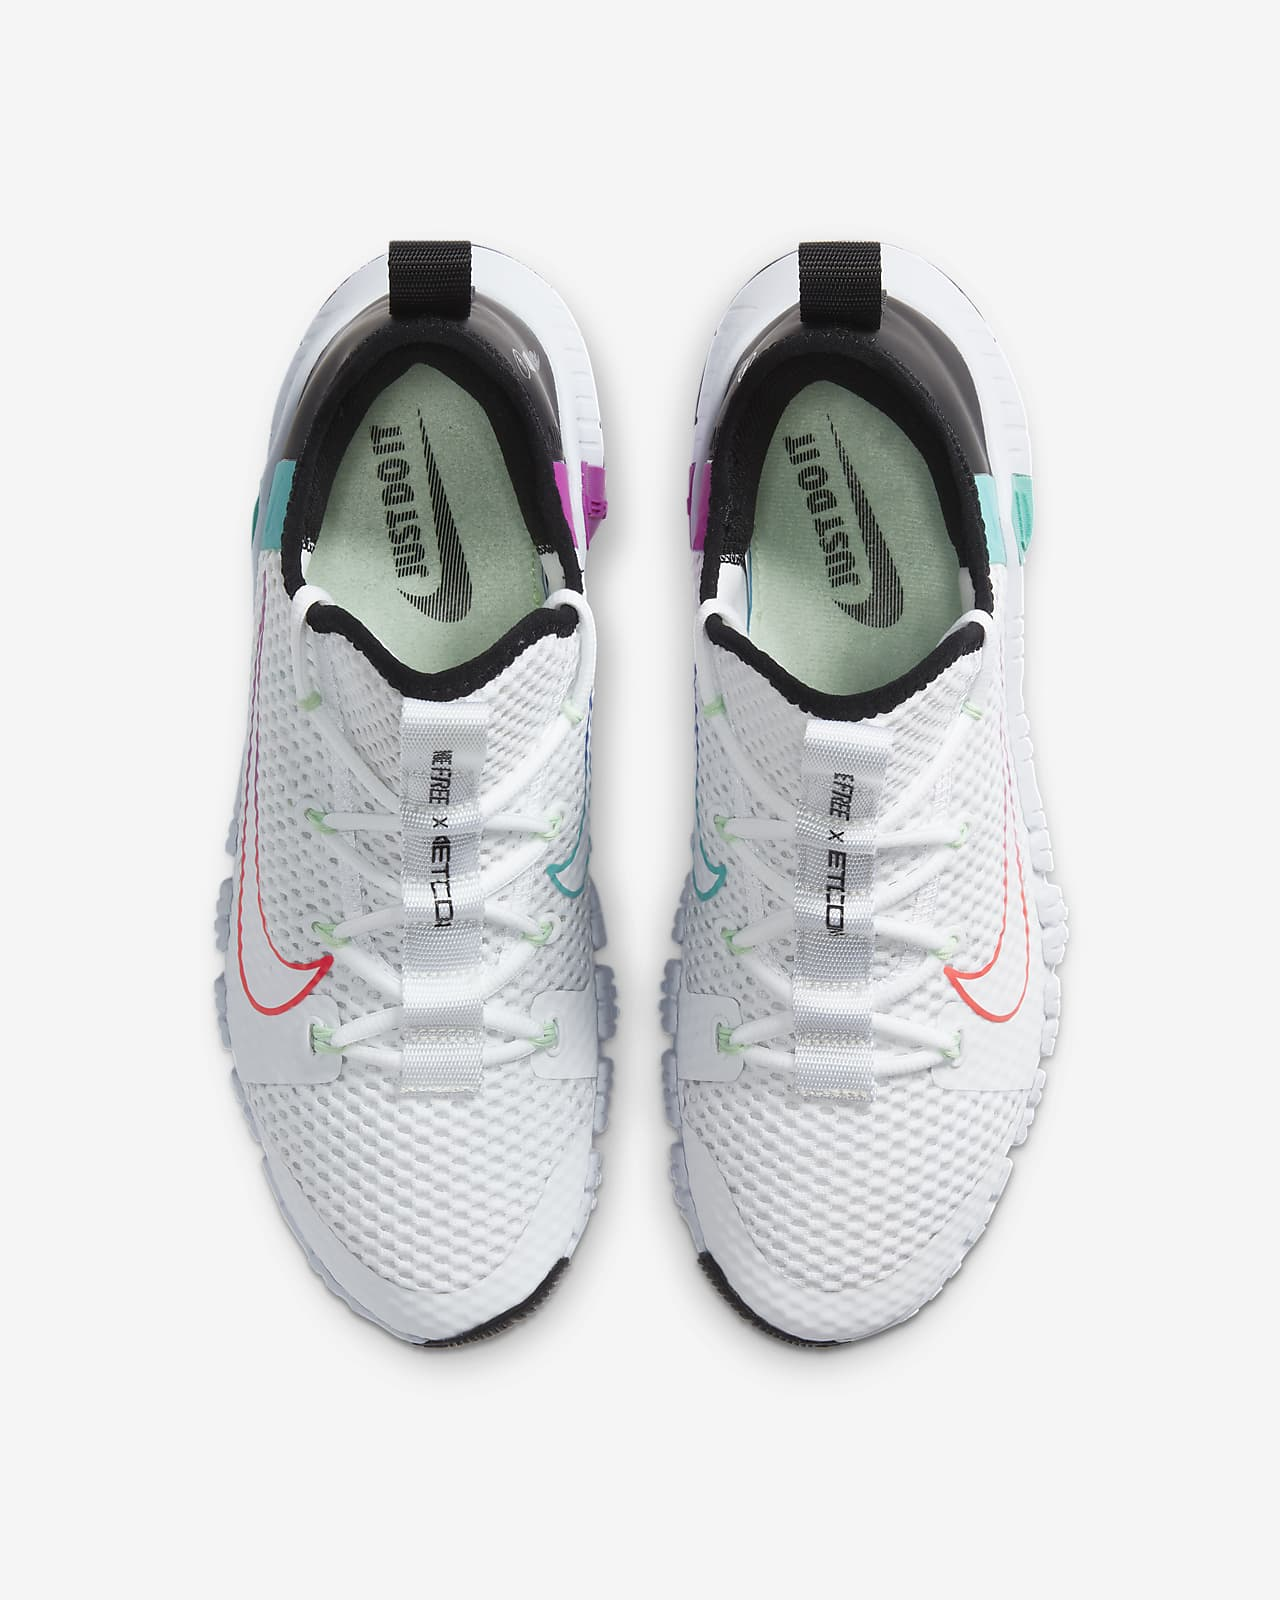 Flecha tubo Delgado  Nike Free Metcon 3 Men's Training Shoe. Nike BE